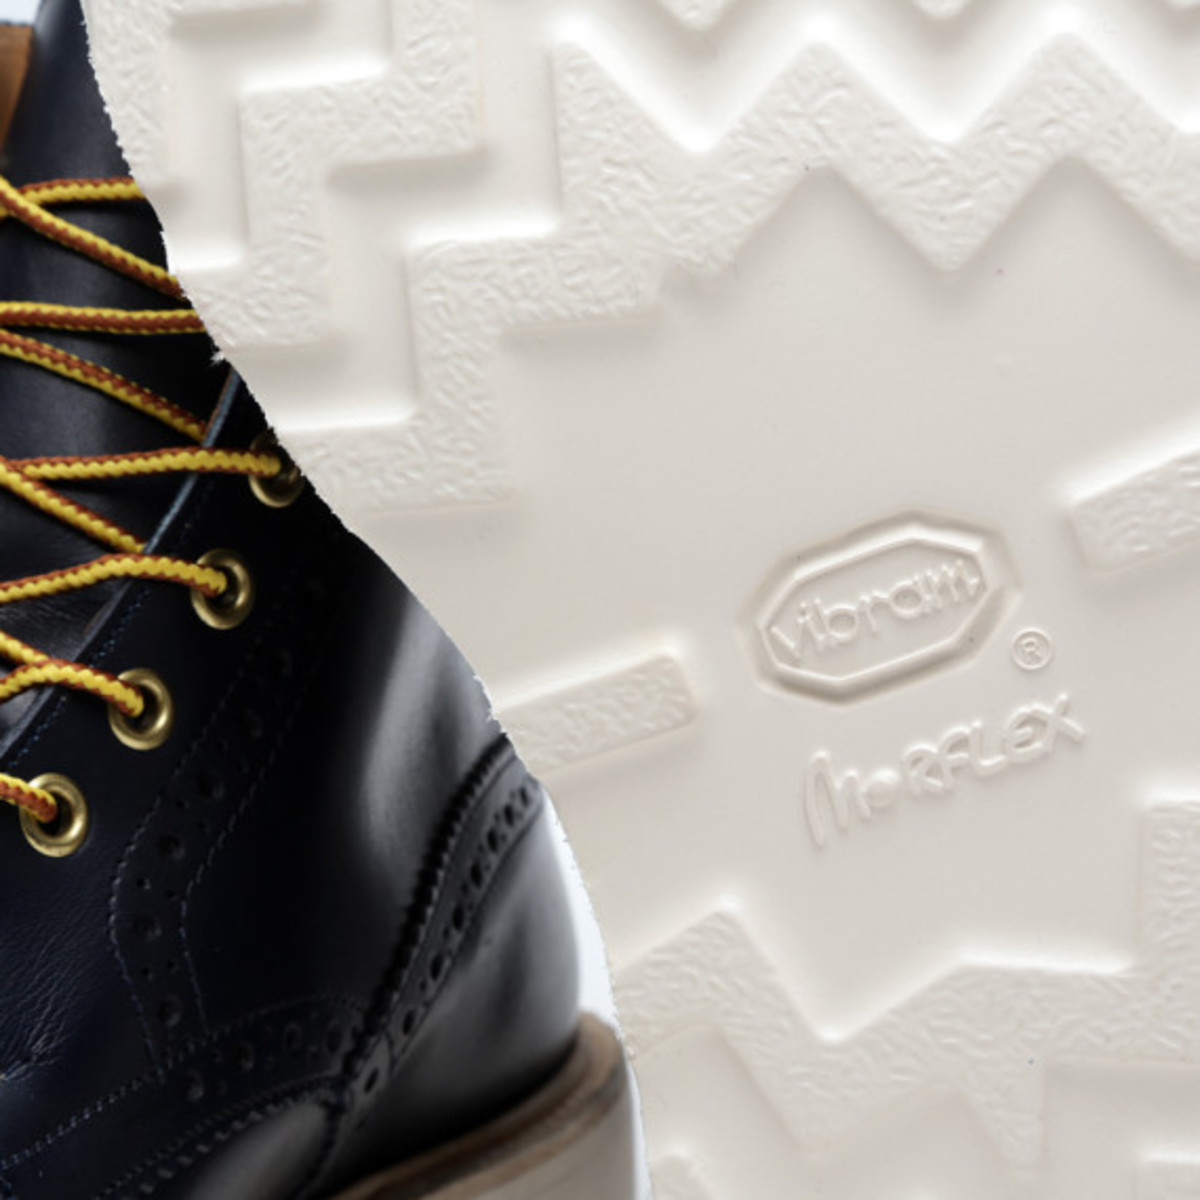 end-trickers-vibram-sole-stow-boot-37